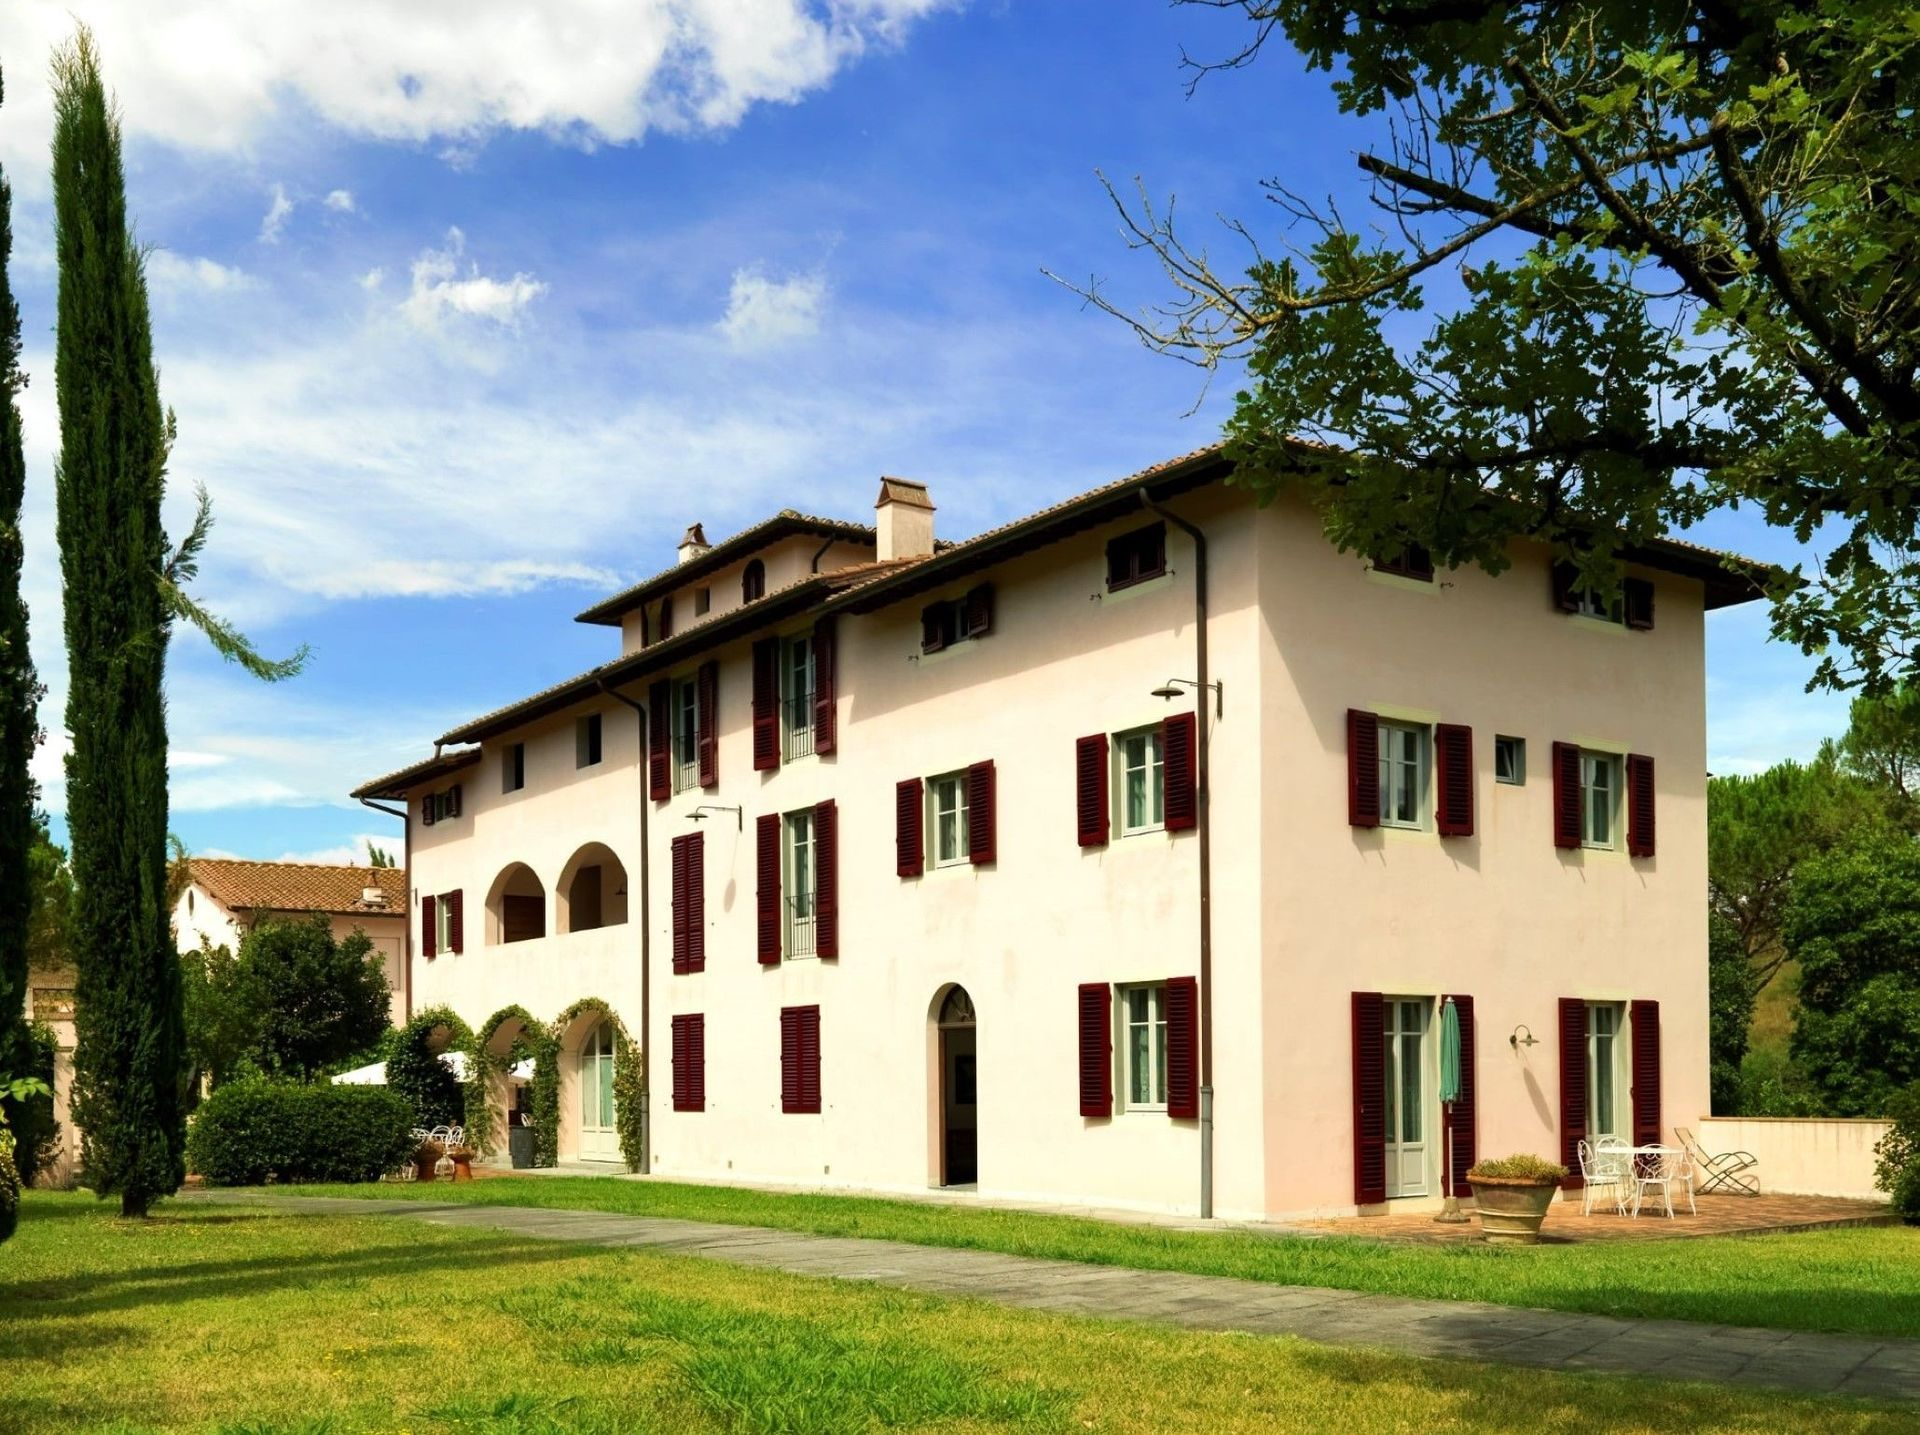 Beauty At Home Castelfiorentino agriturismo la canonica: villa that sleeps 15 people in 8